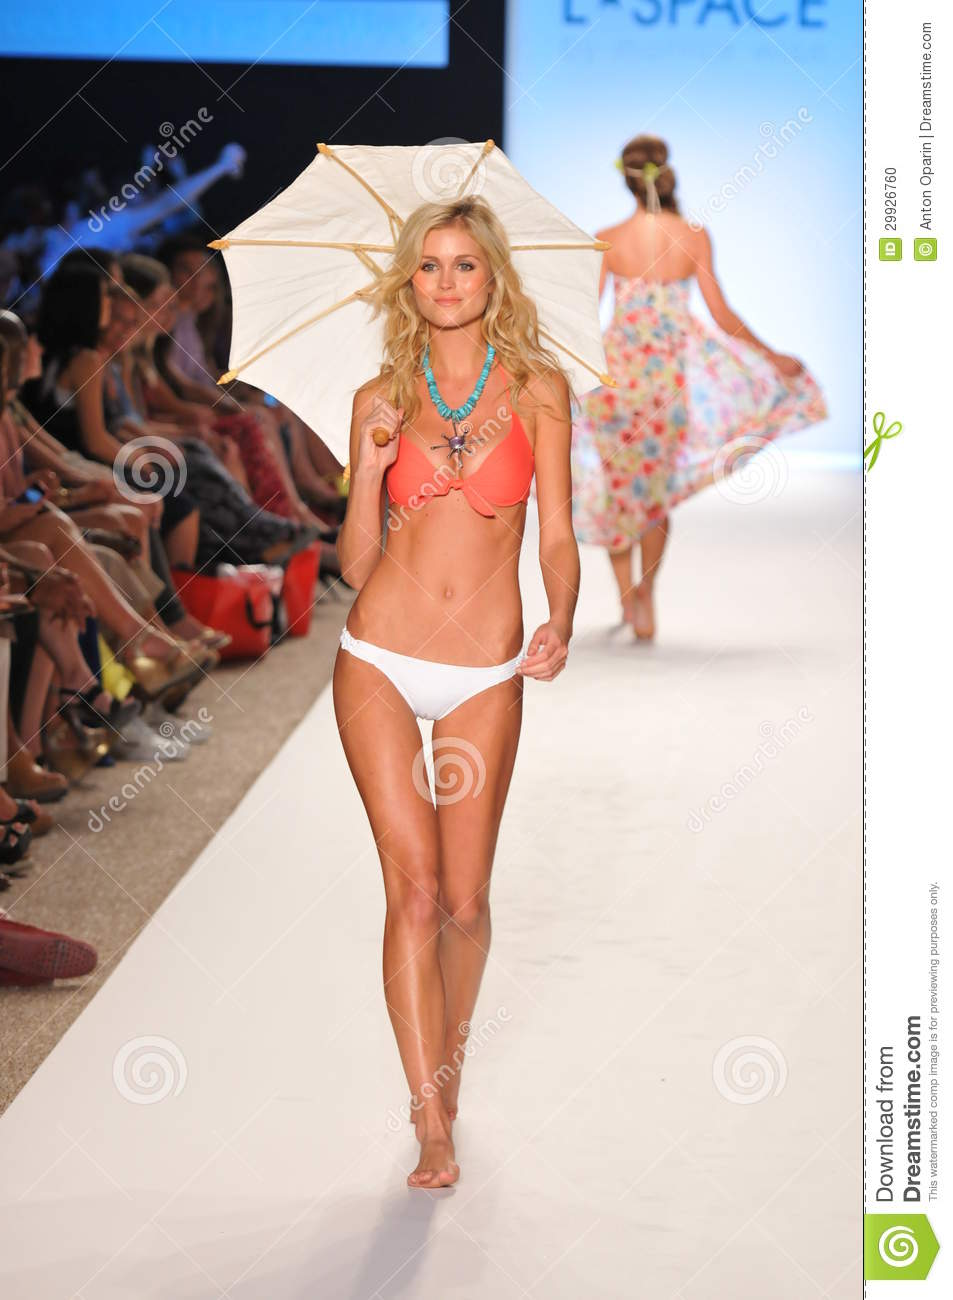 MIAMI - JULY 14: Model Walks Runway At The L Space